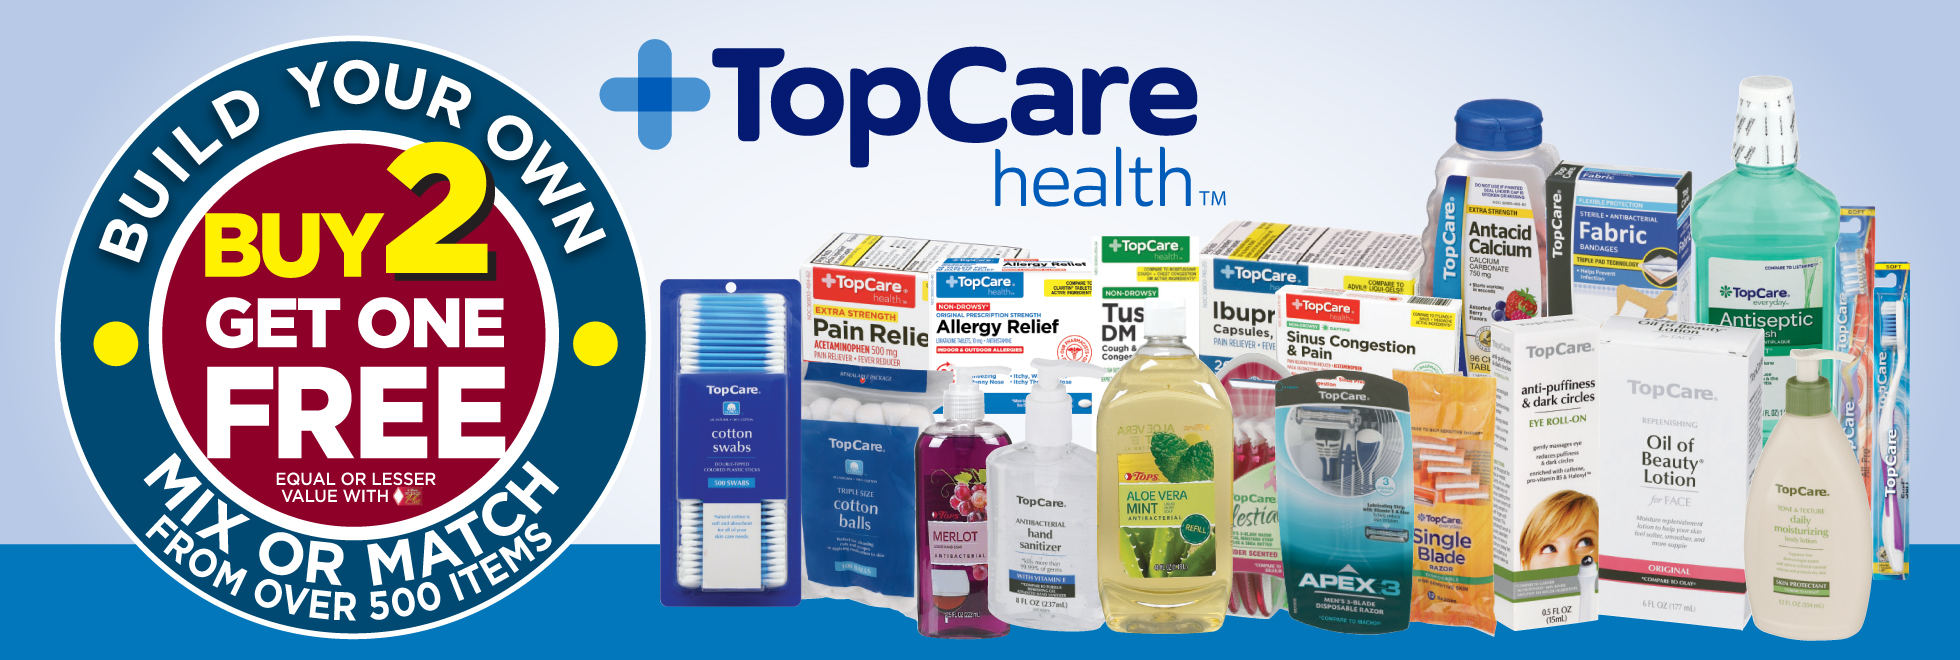 TopCare Buy 2 Get 1 Free Sale